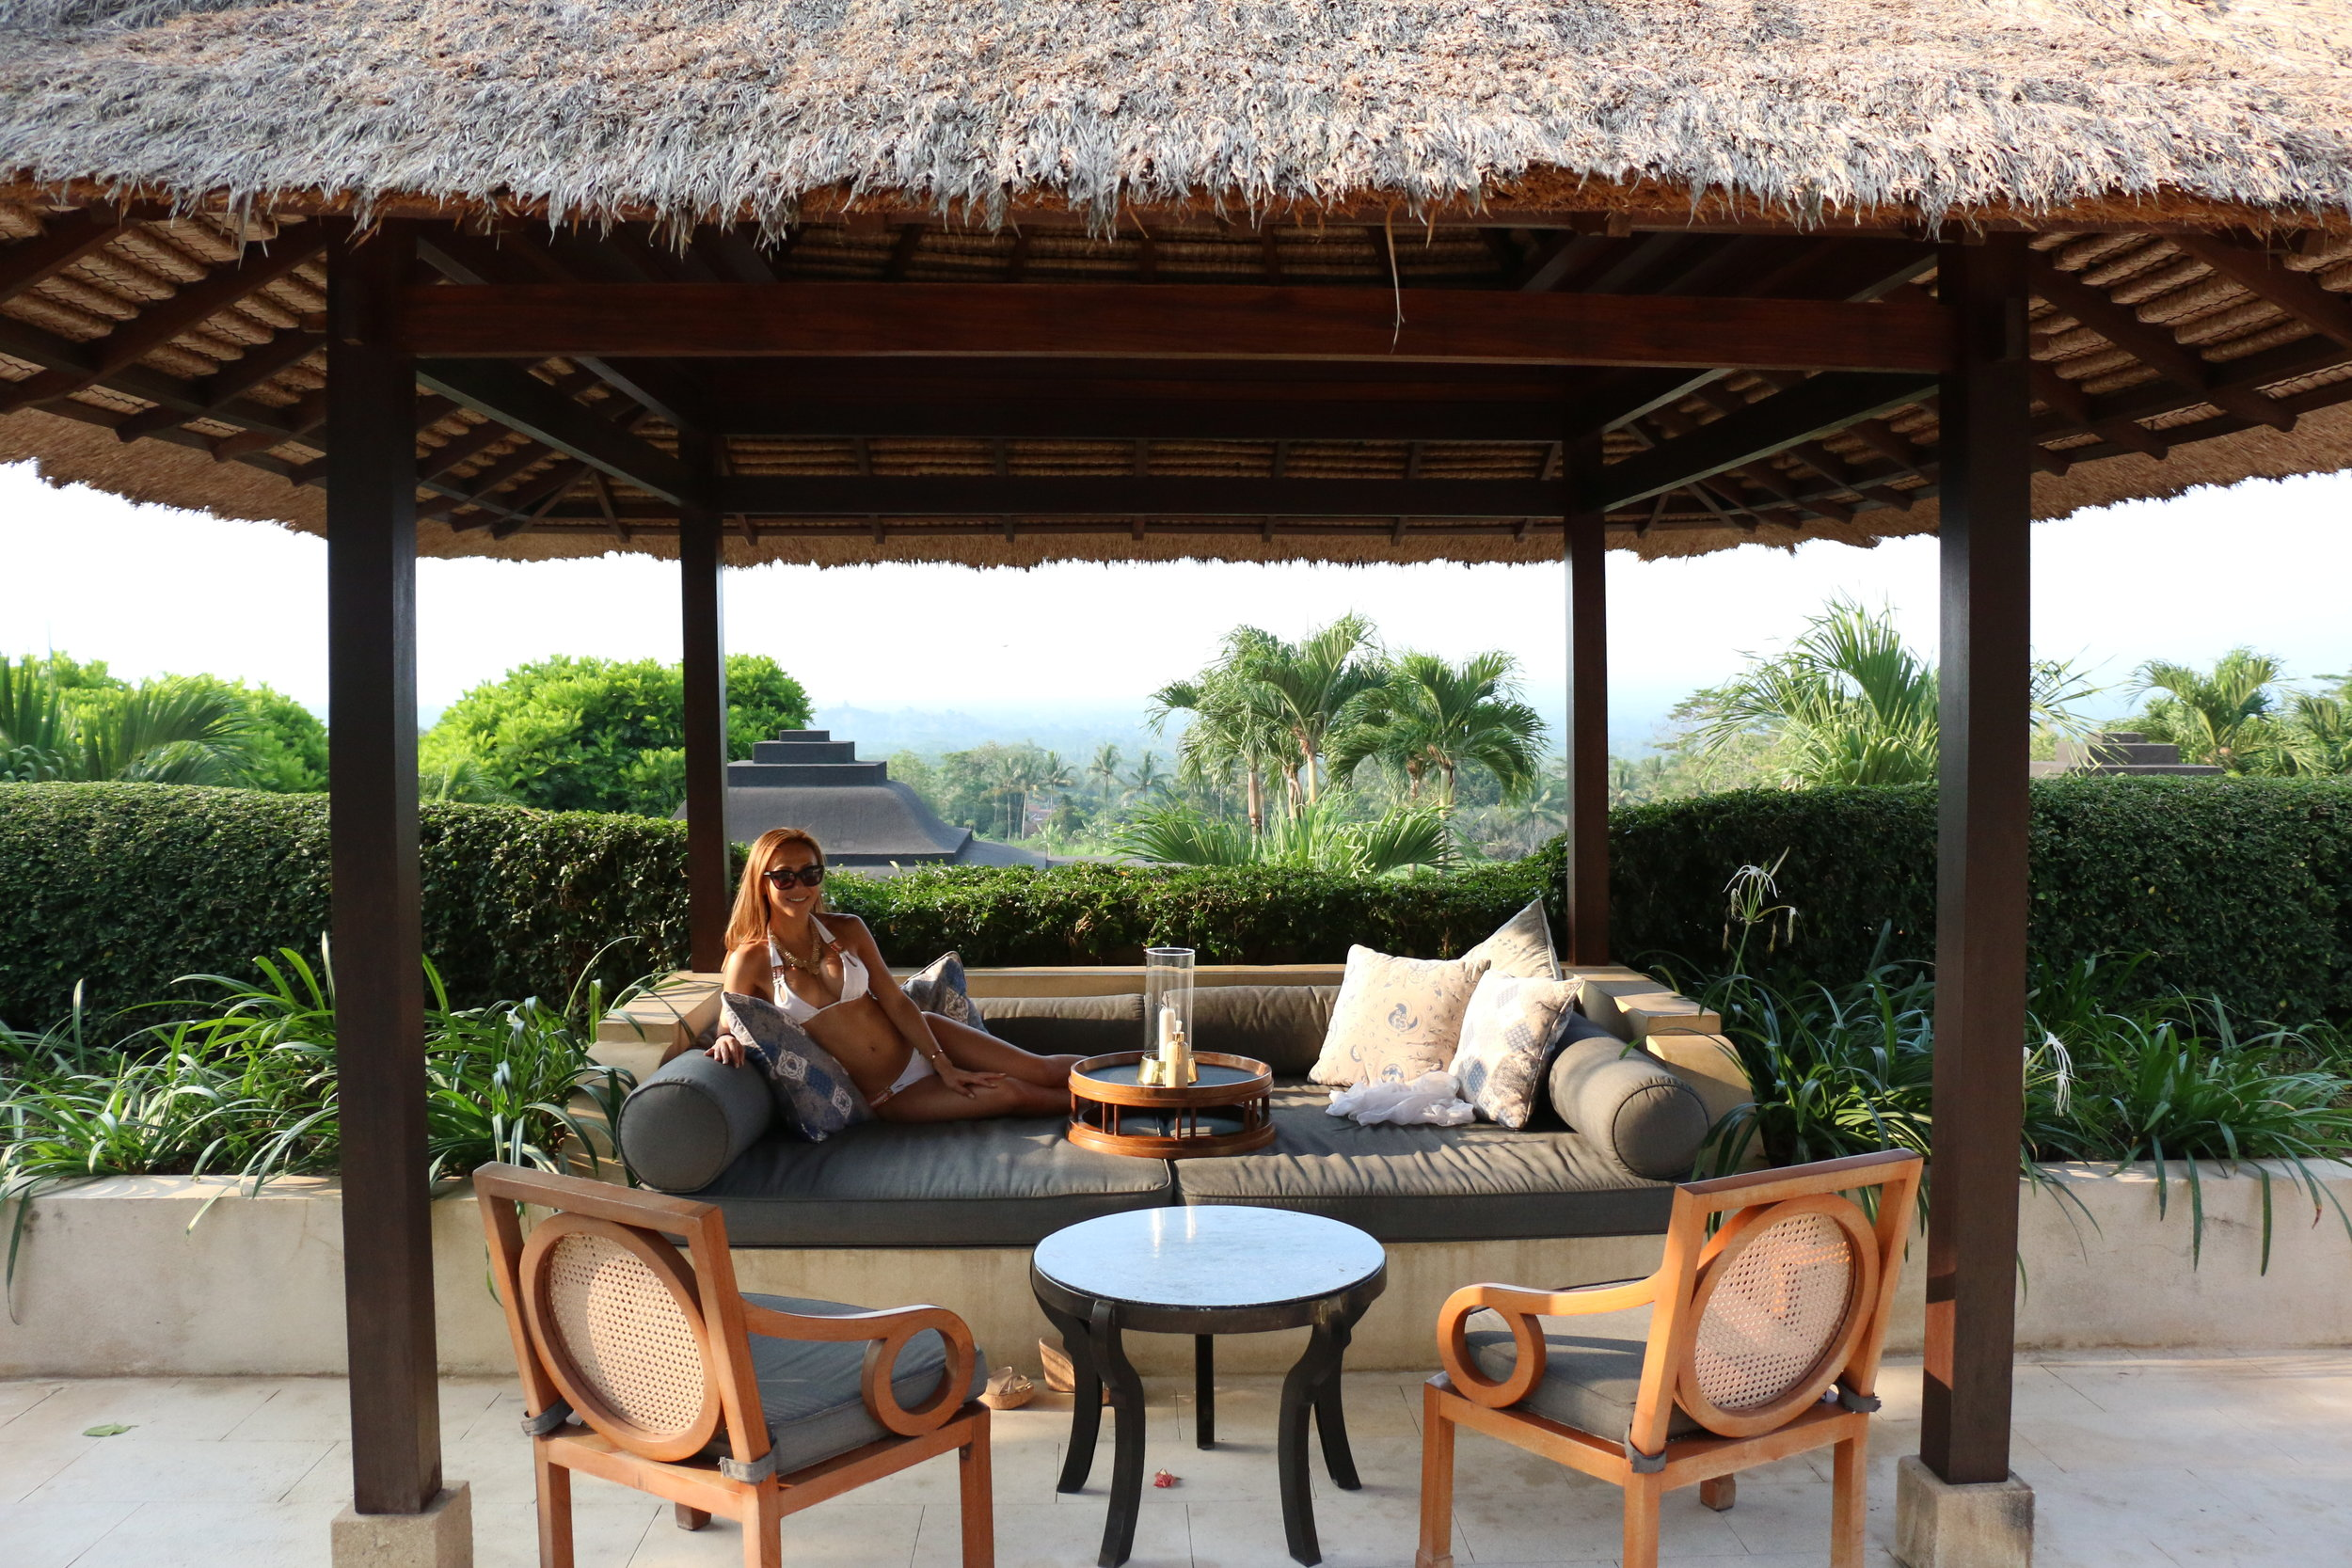 Each suite will open up to a private terrace like this one, where you will have a full lounger where you can lay on to read, relax, paint or enjoy a drink at. My favorite spot after a long day of sightseeing.